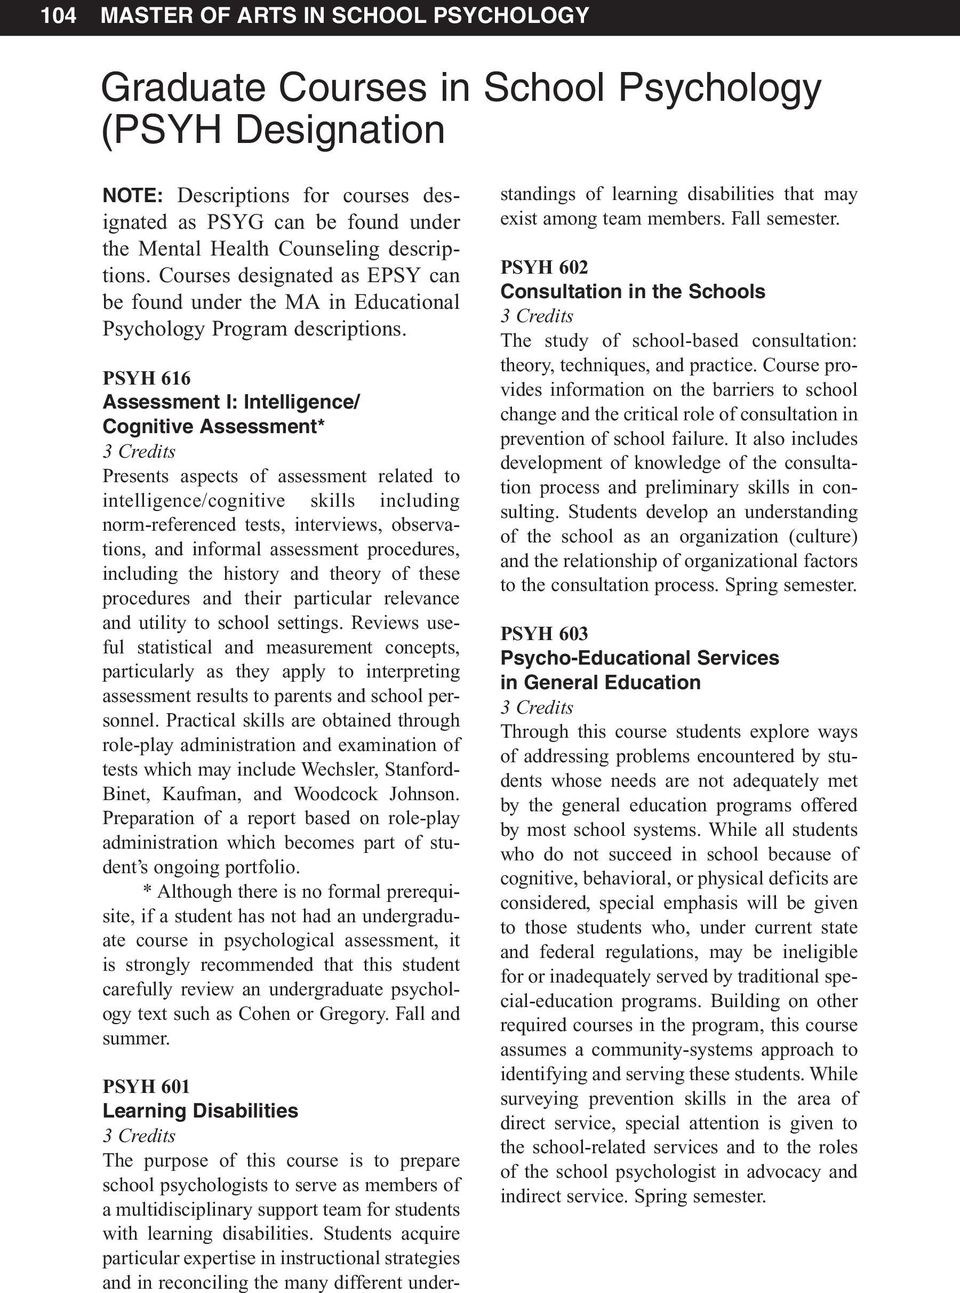 PSYH 616 Assessment I: Intelligence/ Cognitive Assessment* Presents aspects of assessment related to intelligence/cognitive skills including norm-referenced tests, interviews, observations, and